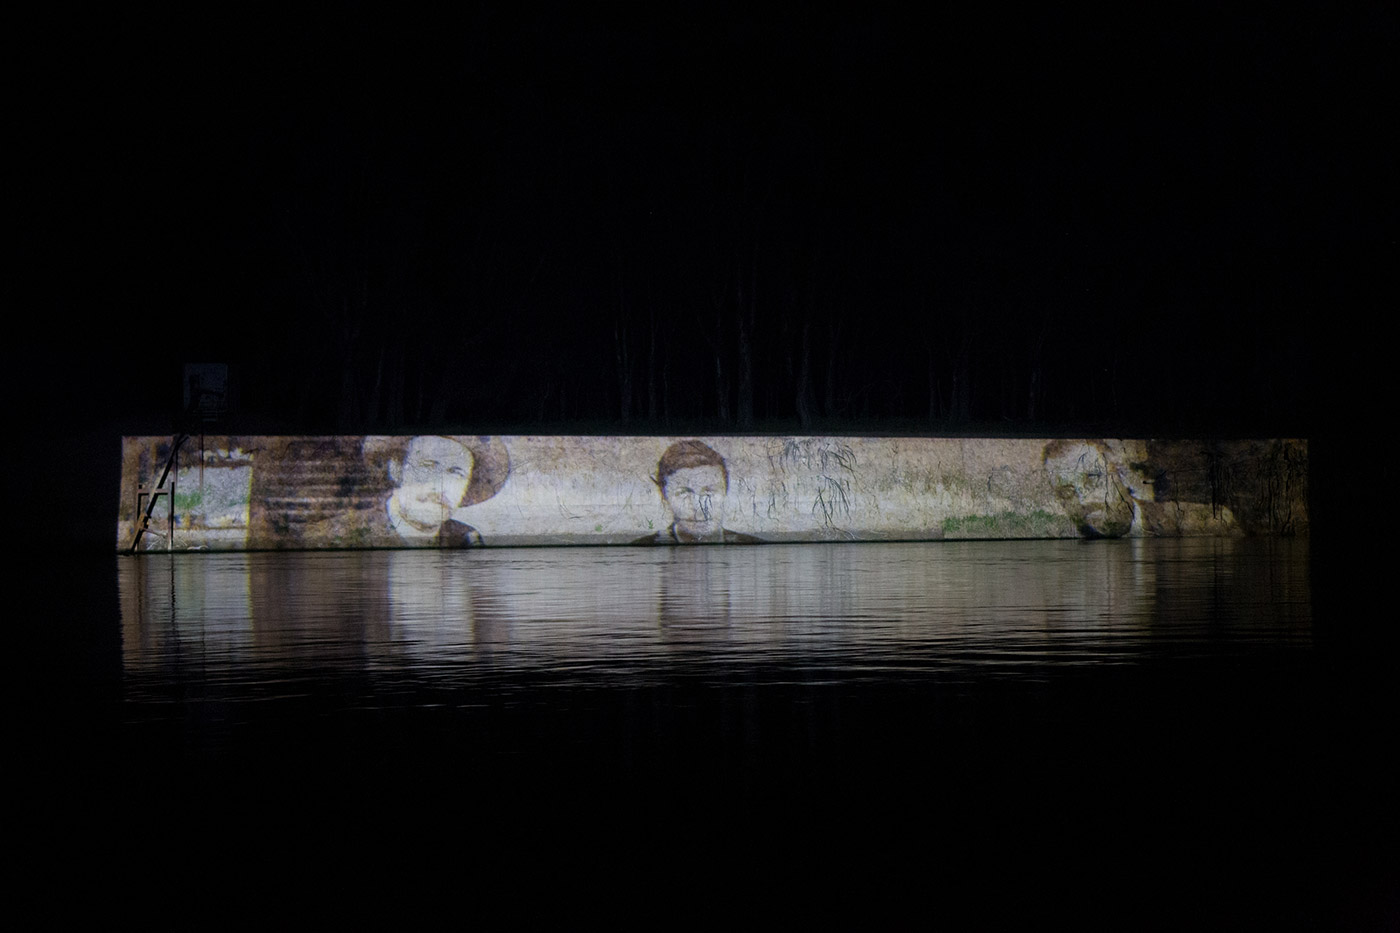 An image of wheat breeders Nathan Cobb, Fred Wills and William Farrer at Lambrigg (about 1892) projected onto the bank of the Murrumbidgee, 2015 - click to view larger image